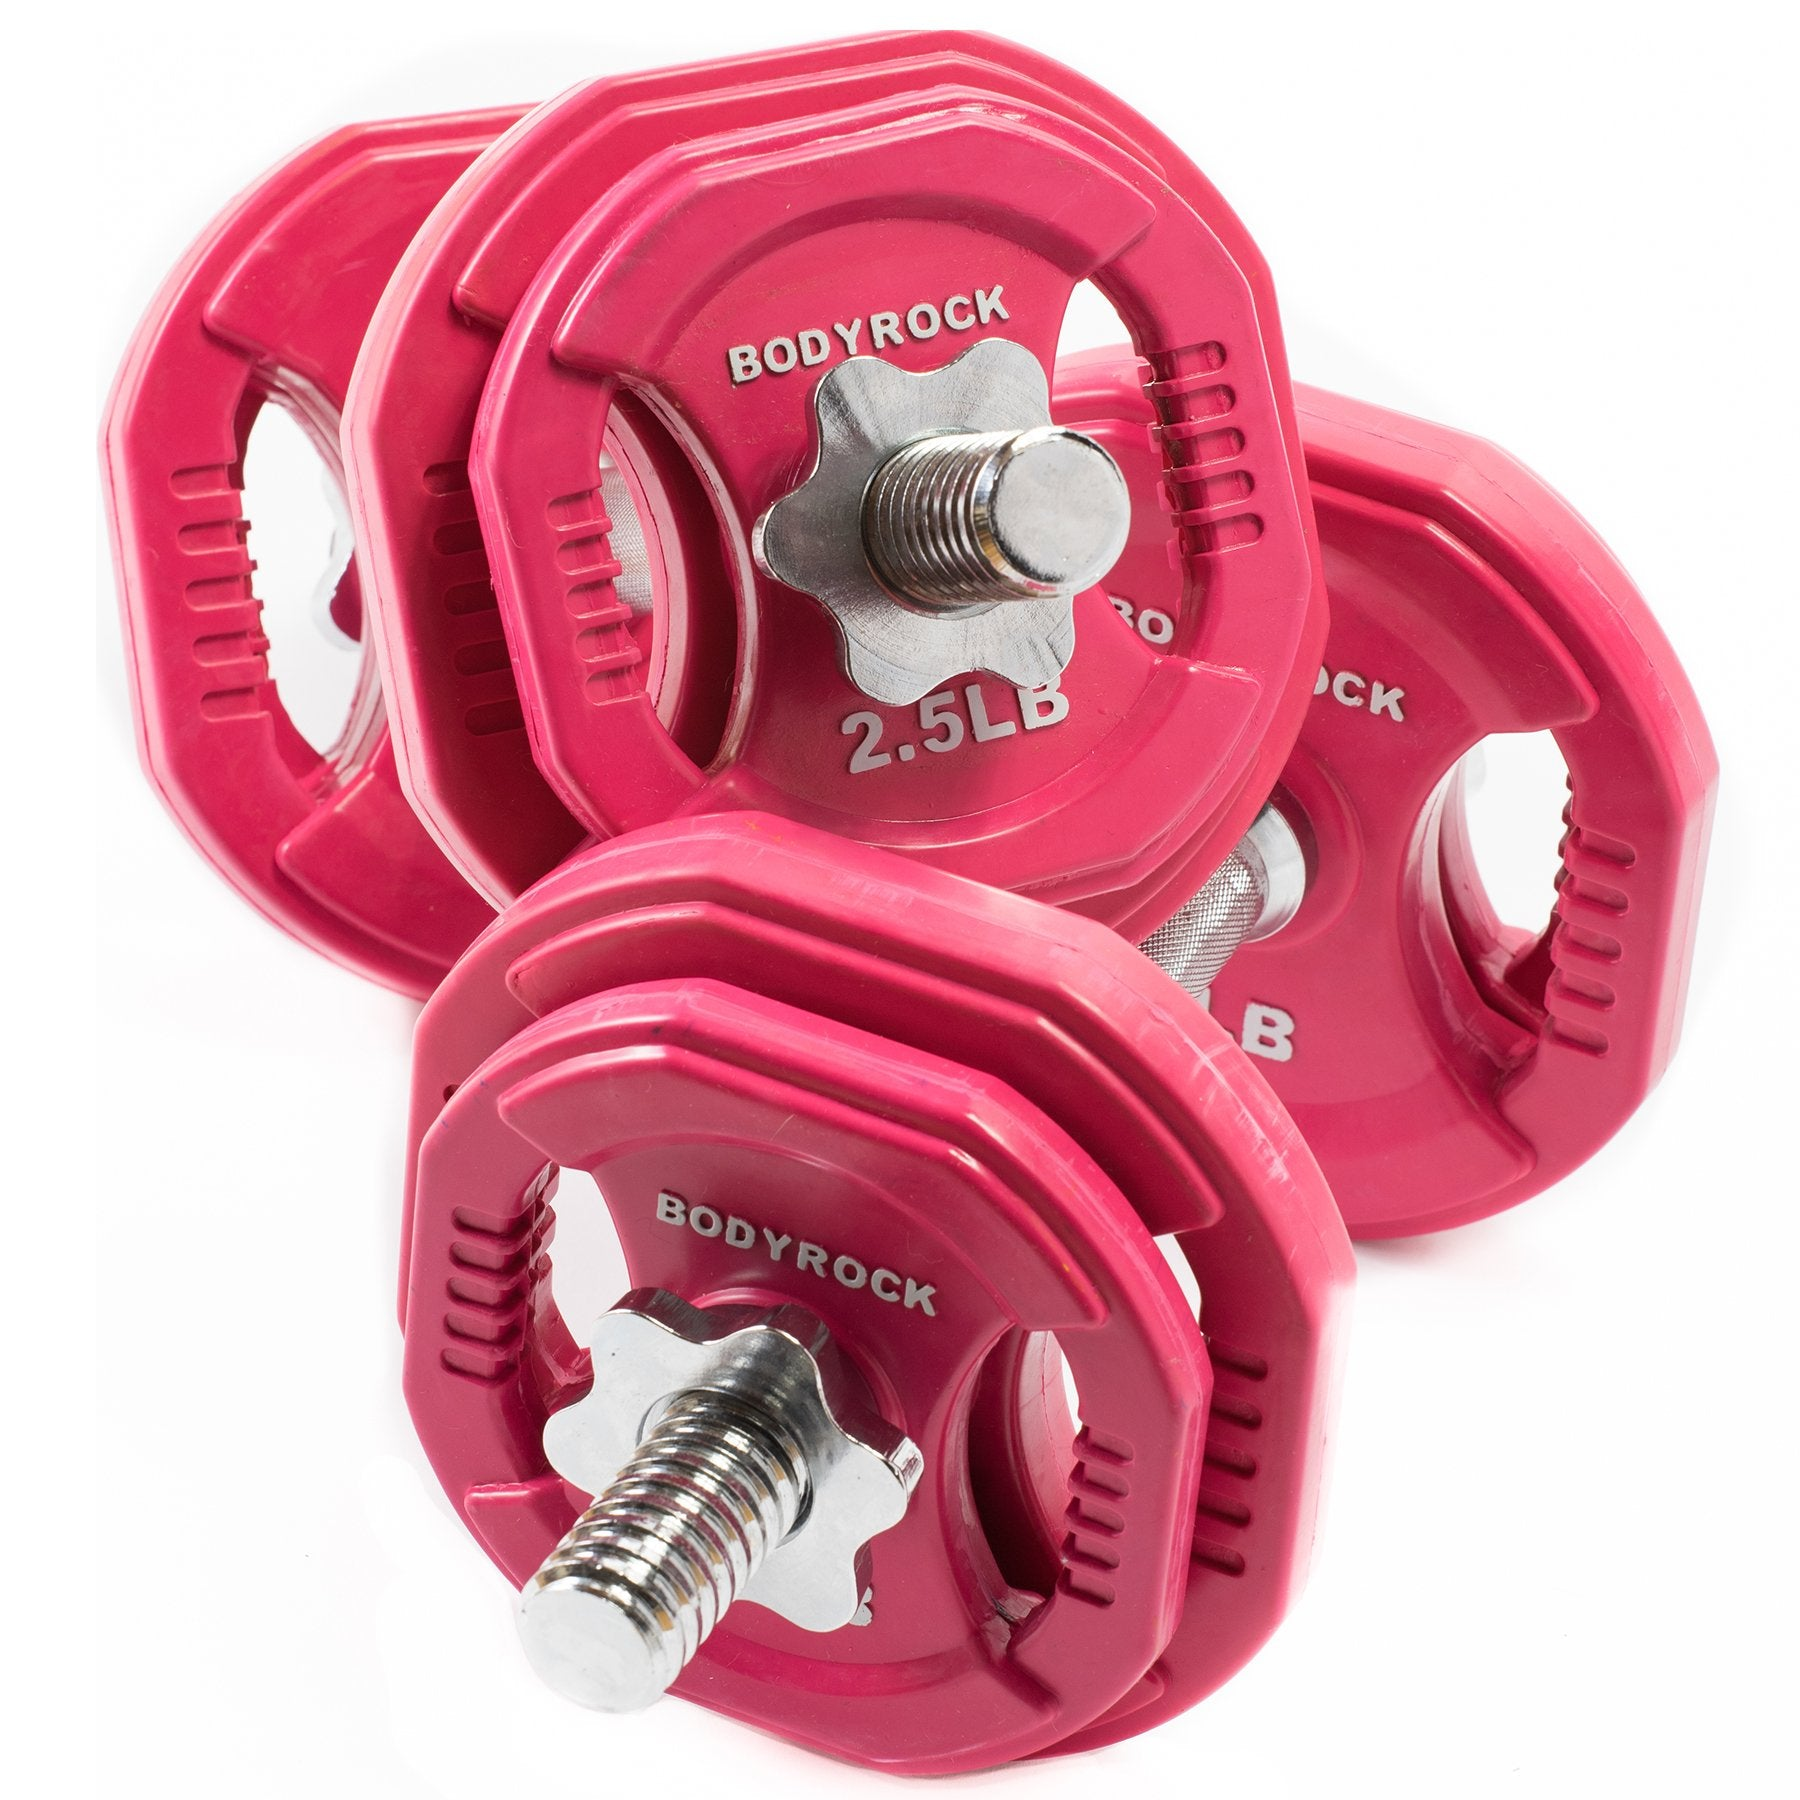 BodyRock Dumbbells & Weights